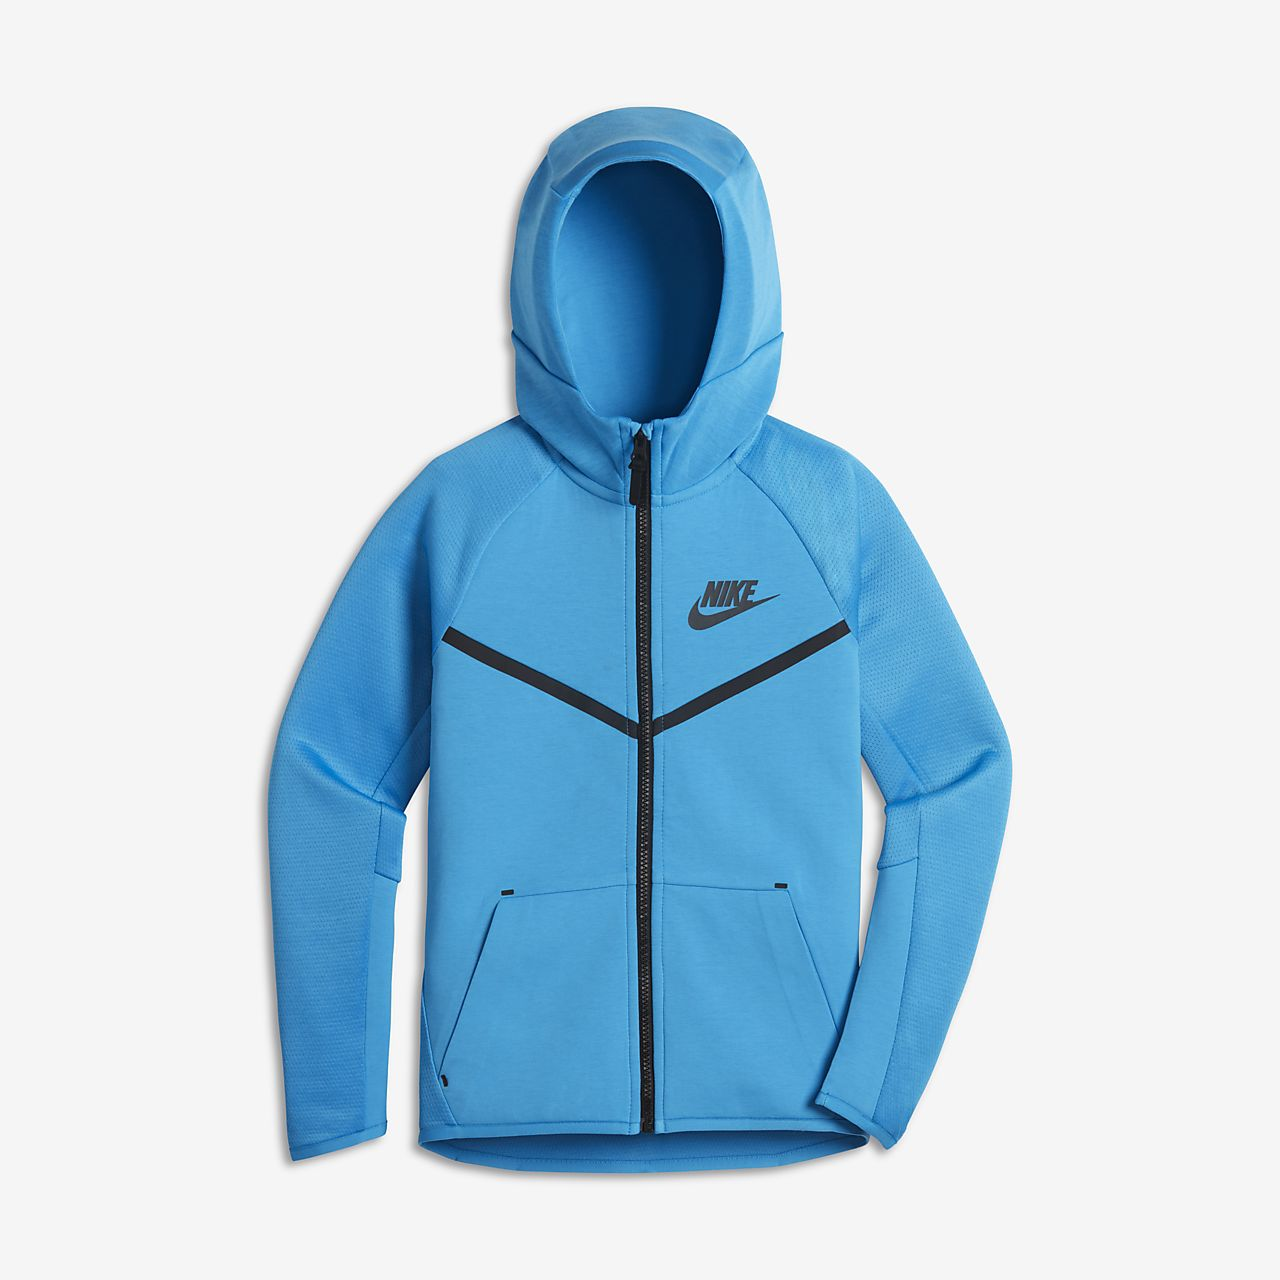 052cfc4cb562 Nike Sportswear Tech Fleece Windrunner Older Kids  (Boys ) Hoodie ...